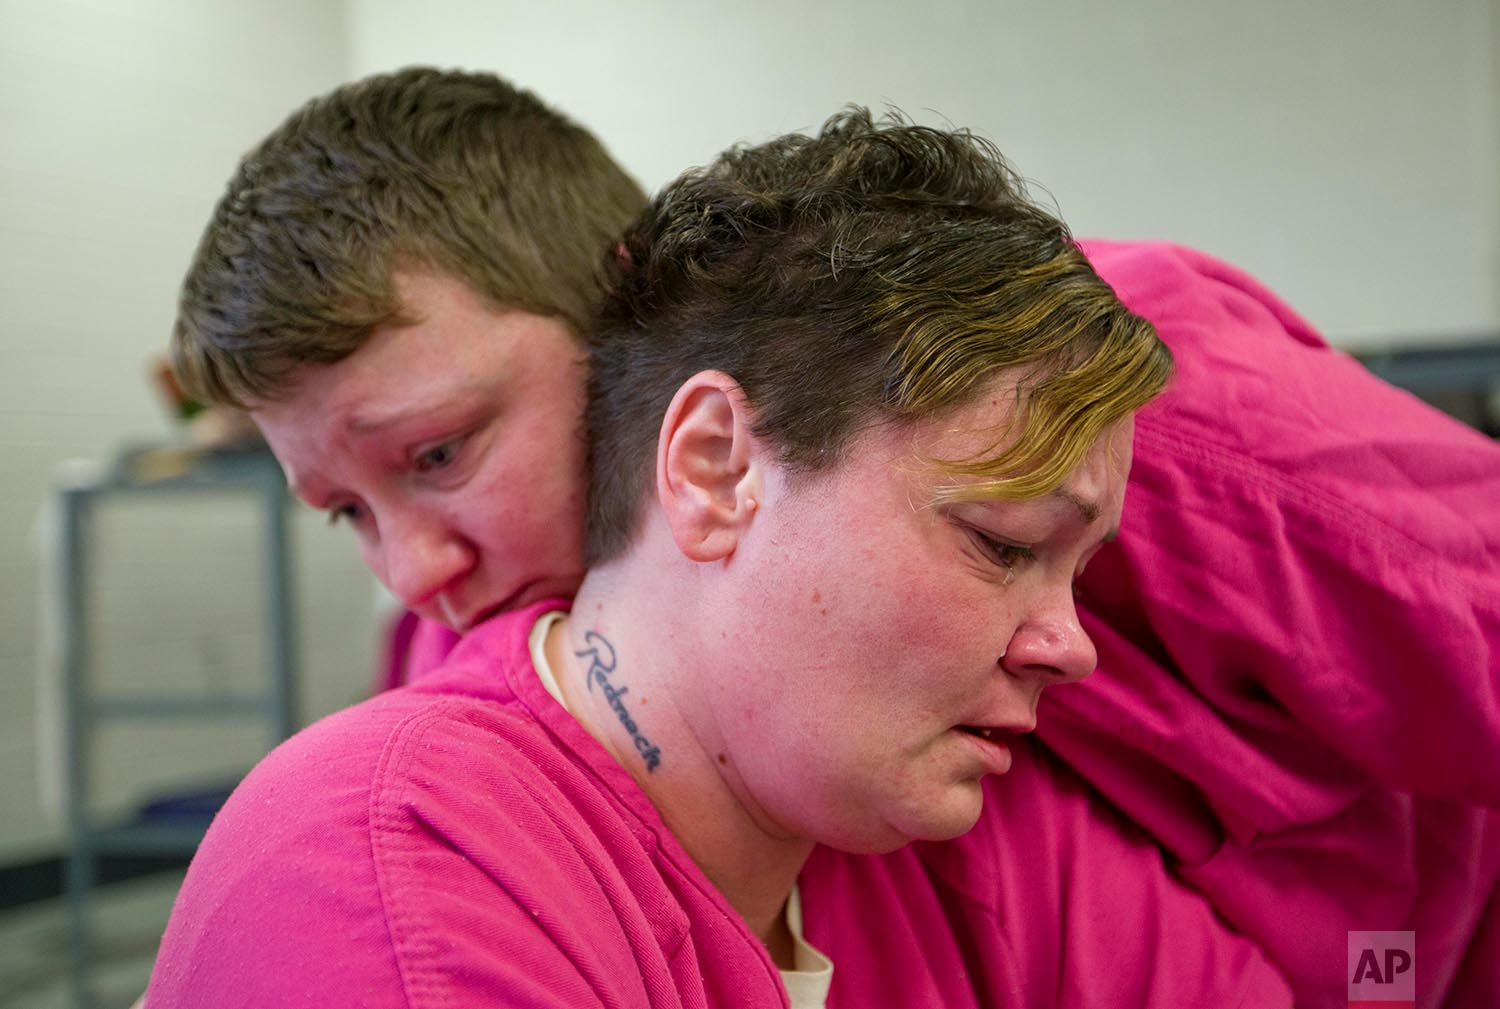 Mary Sammons, foreground, is comforted in the Campbell County Jail in Jacksboro, Tenn., Wednesday, March 28, 2018, by cellmate Blanche Ball, days after Sammons learned that her 20-year-old son was murdered in Kentucky. (AP Photo/David Goldman)